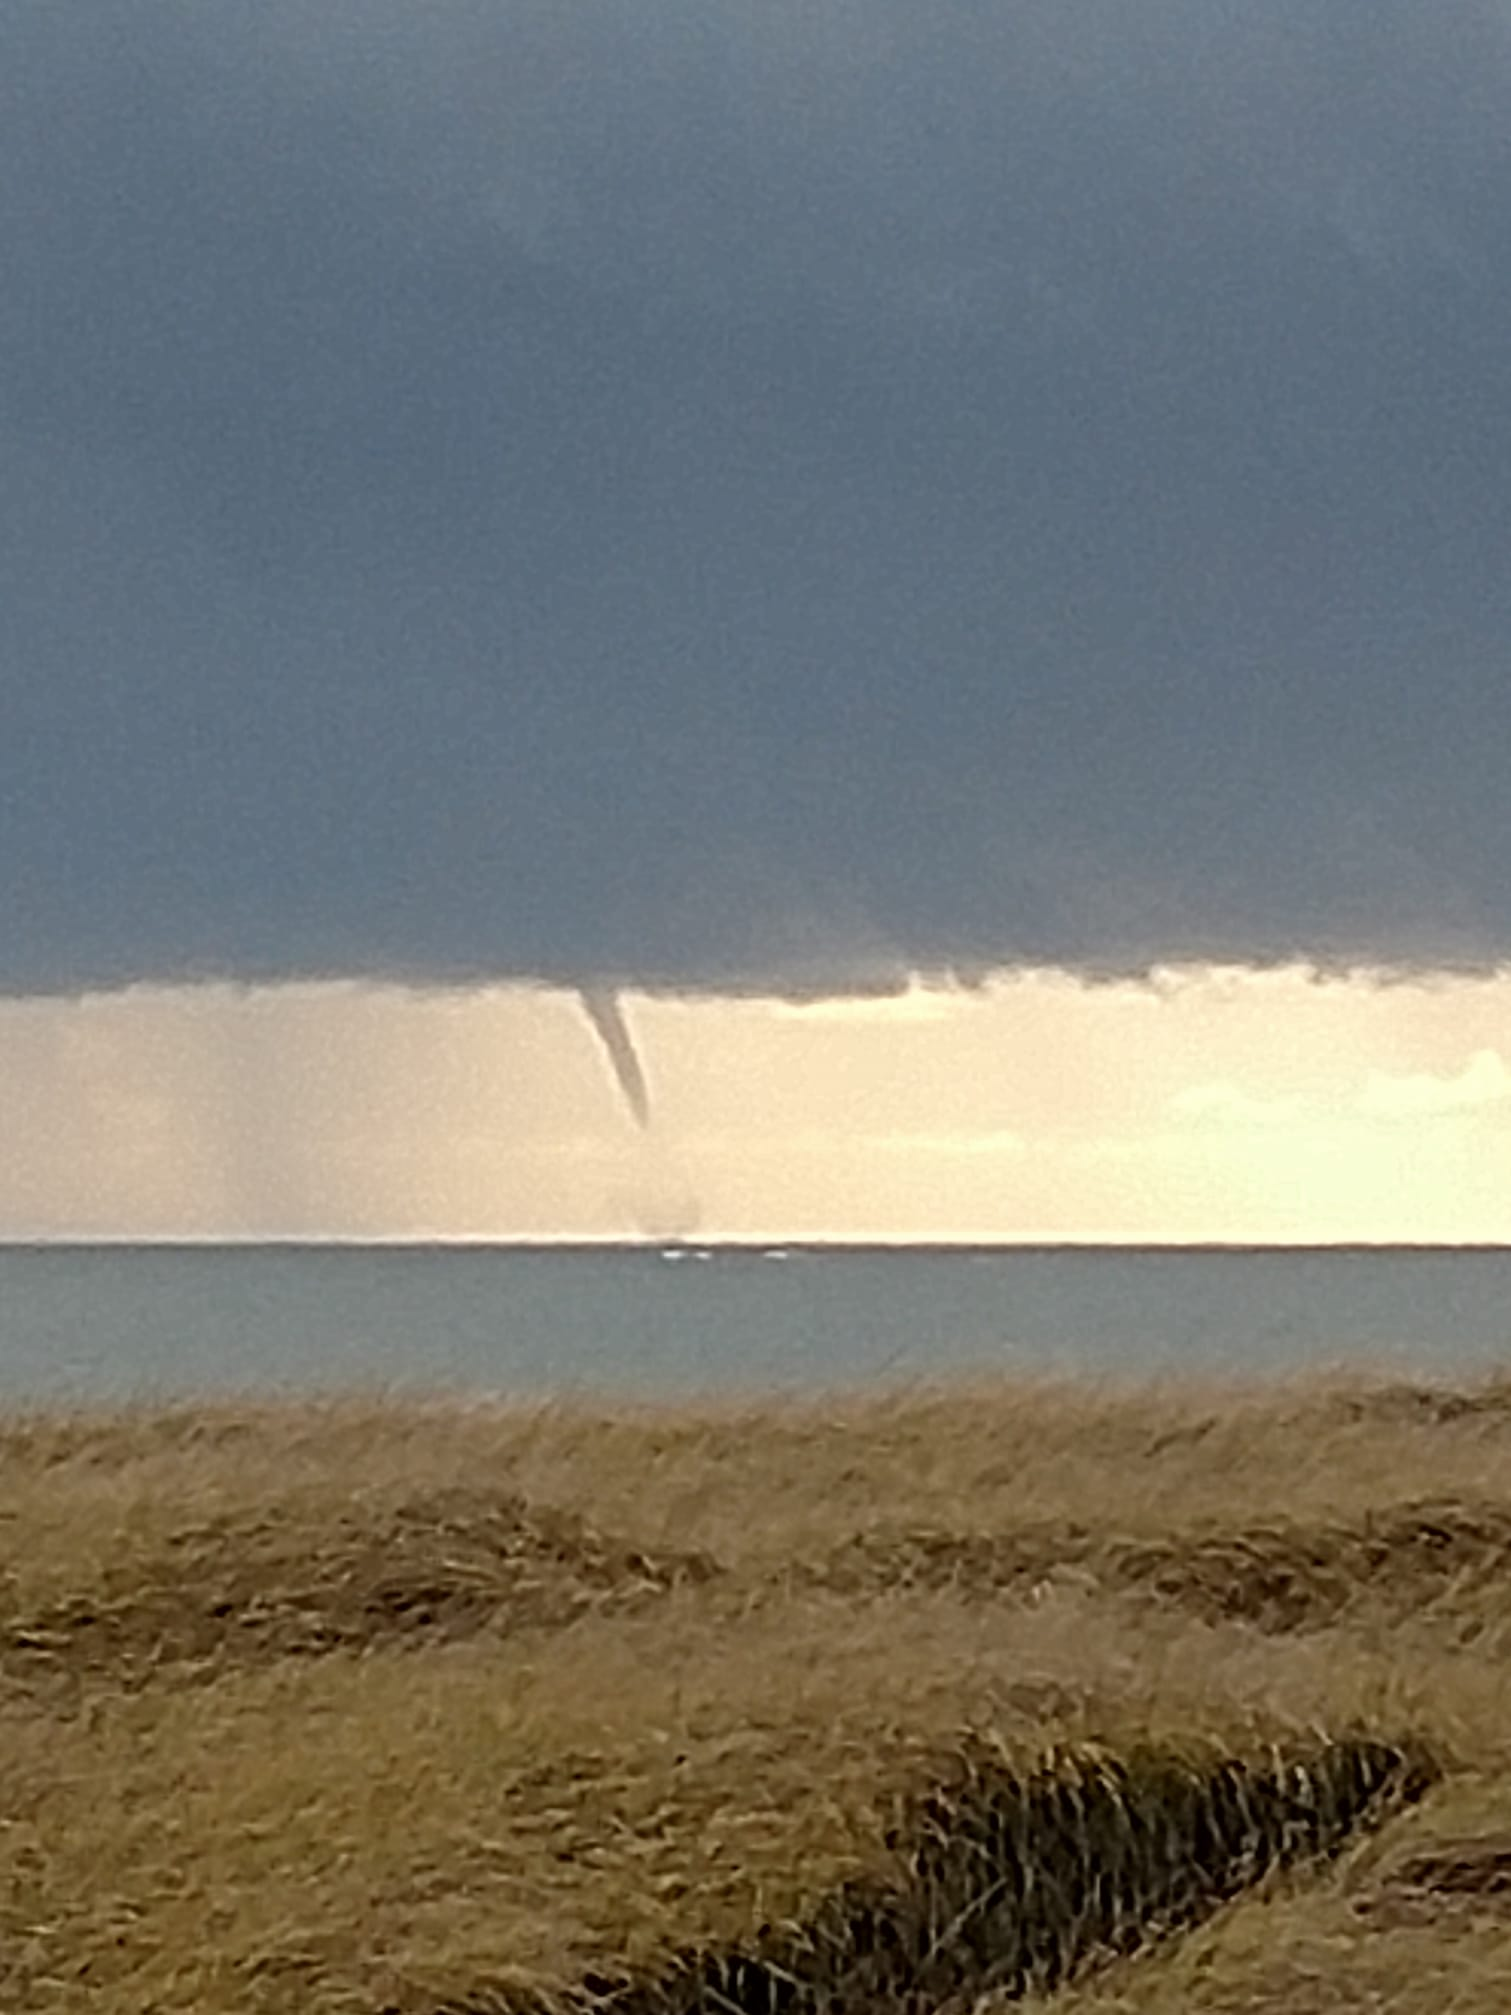 Two waterspouts were spoted off Ocean Shores on Thursday afternoon. (Photo: Debbie Starkey Ferguson)